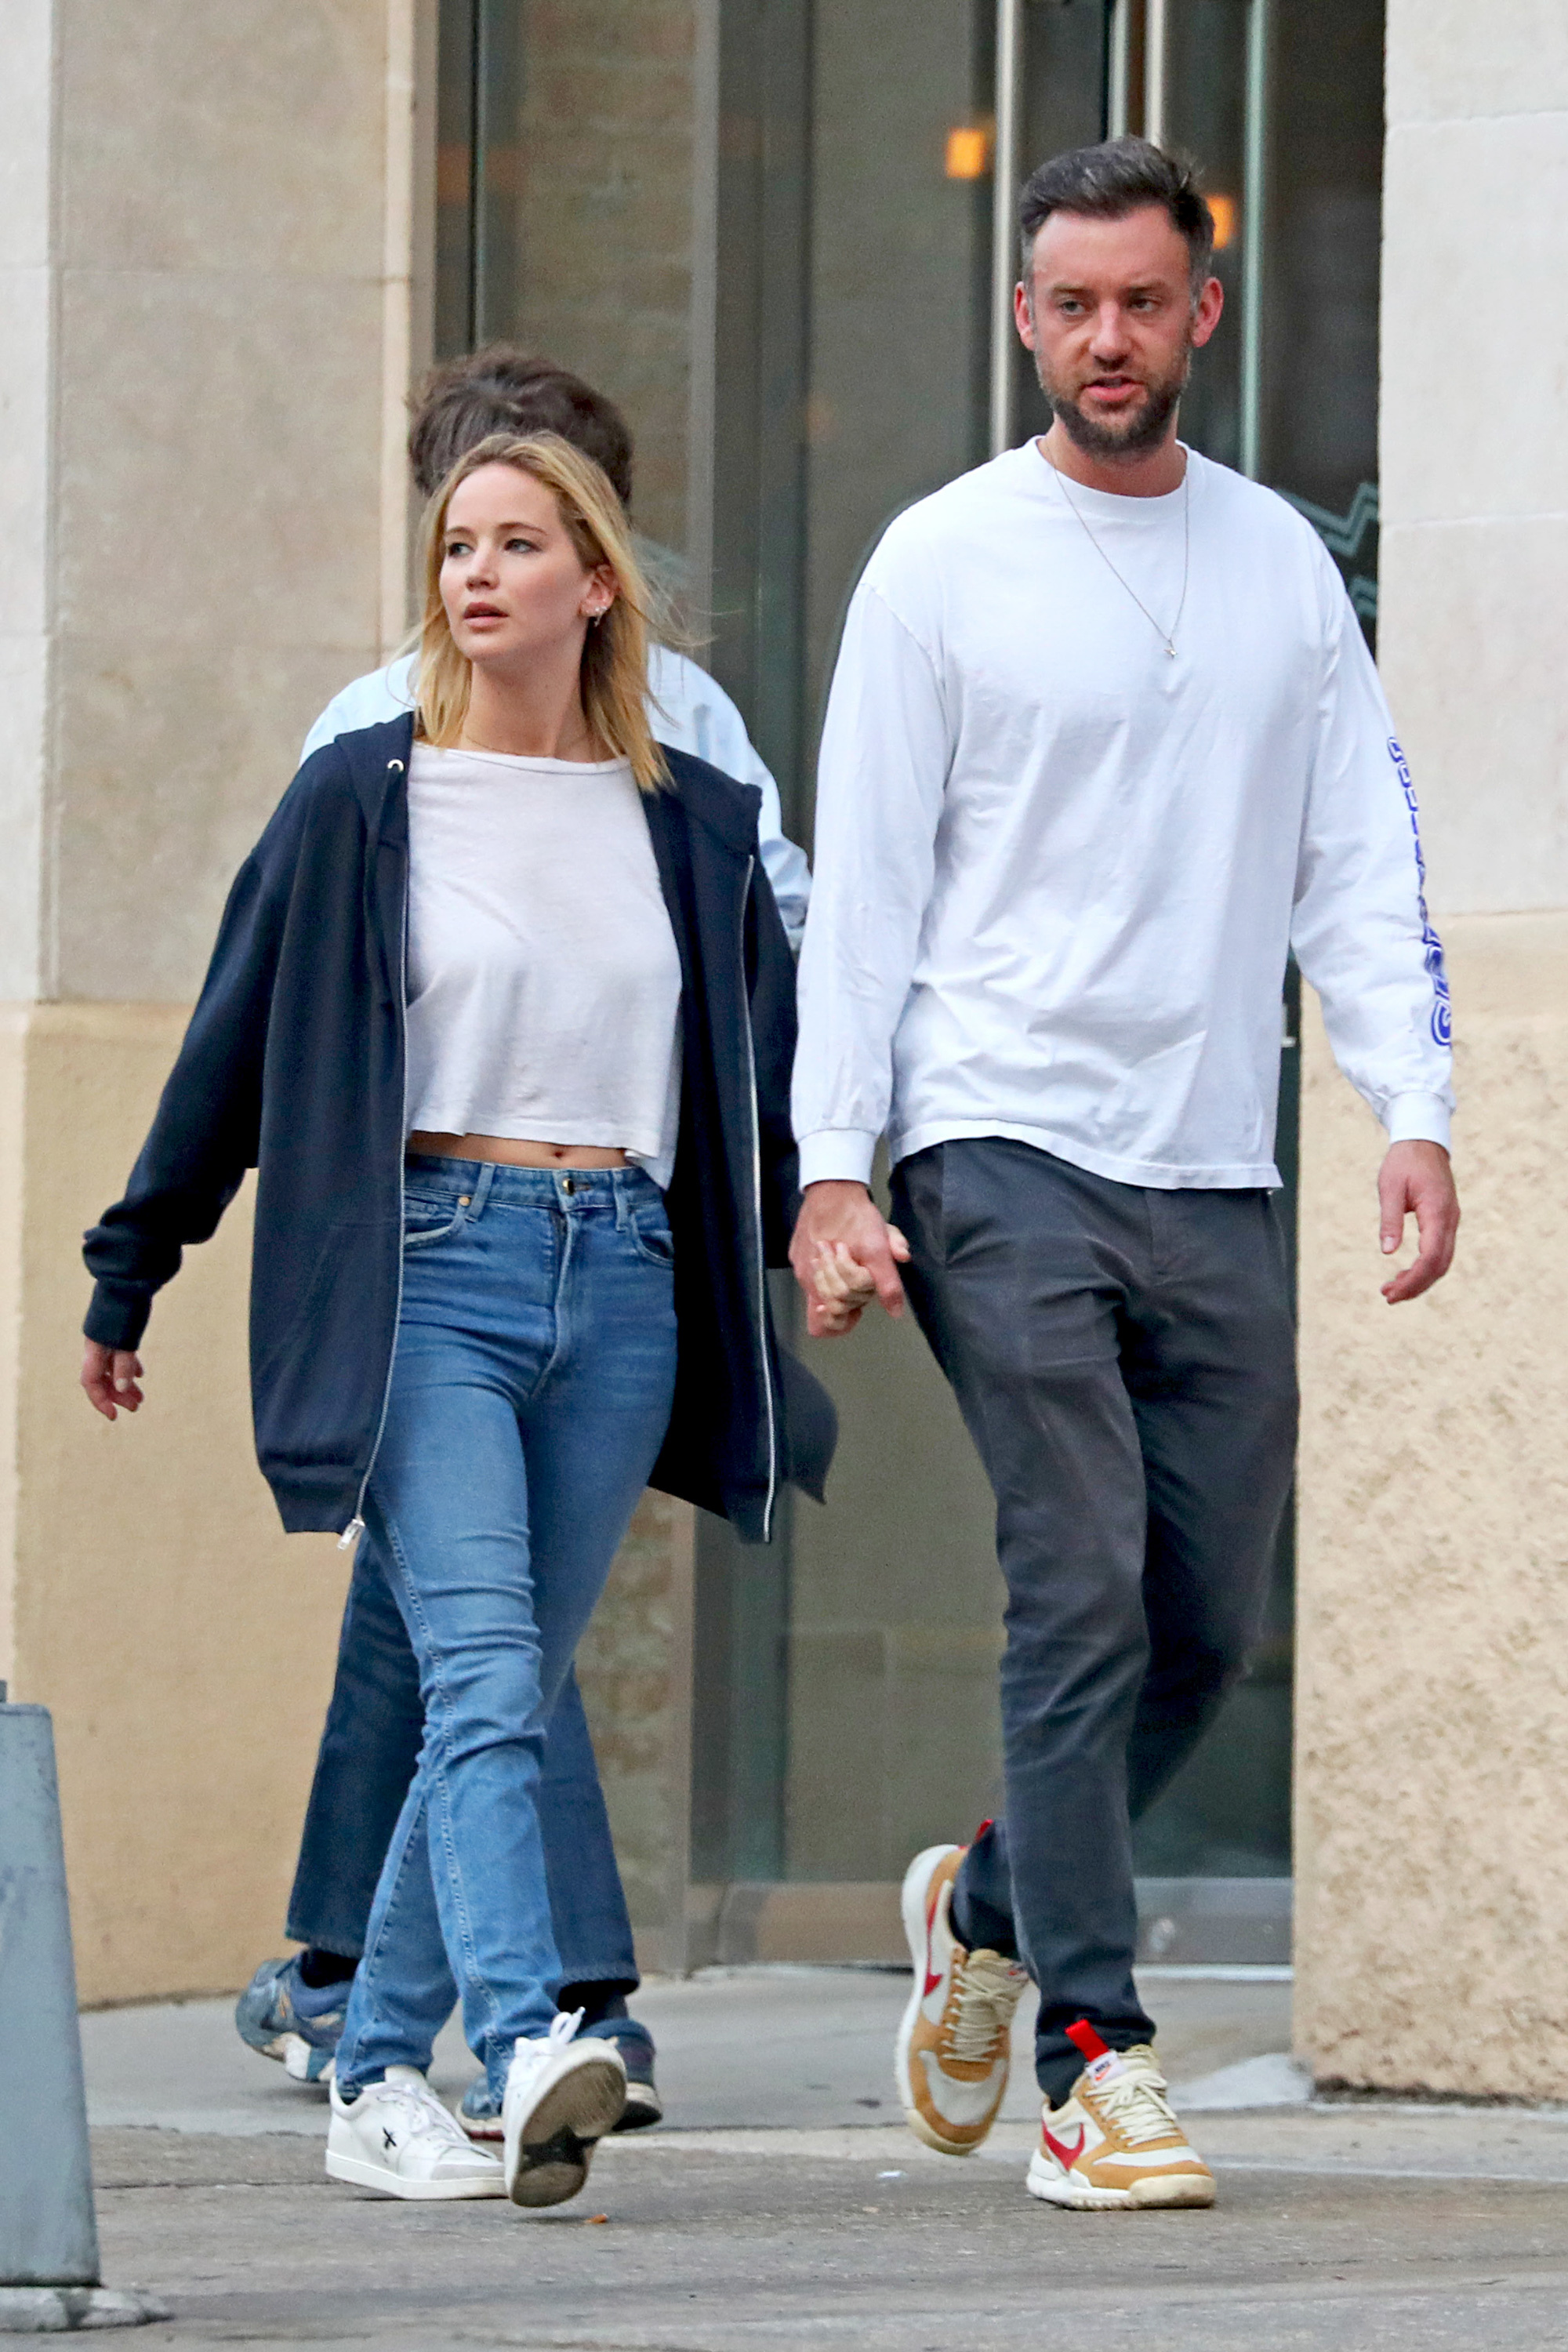 Jennifer Lawrence and her art dealer boyfriend Cooke Maroney spent the day running errands while looking loved up in New York City on Oct. 2, 2018.